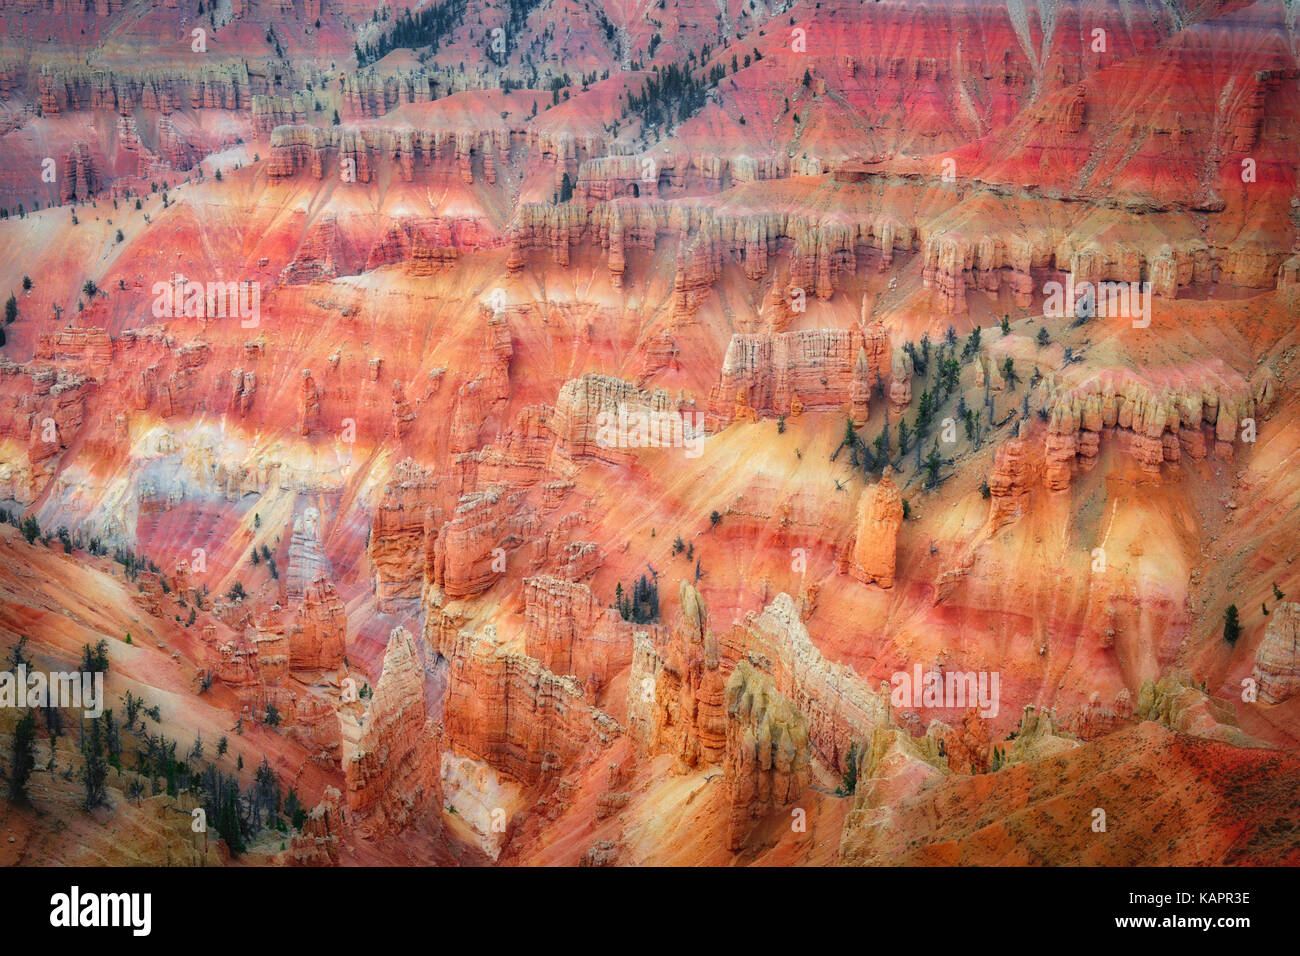 Iron and magnesium oxides create these stunning red and purple colors among the hoodoo amphitheater in Utah's Cedar - Stock Image